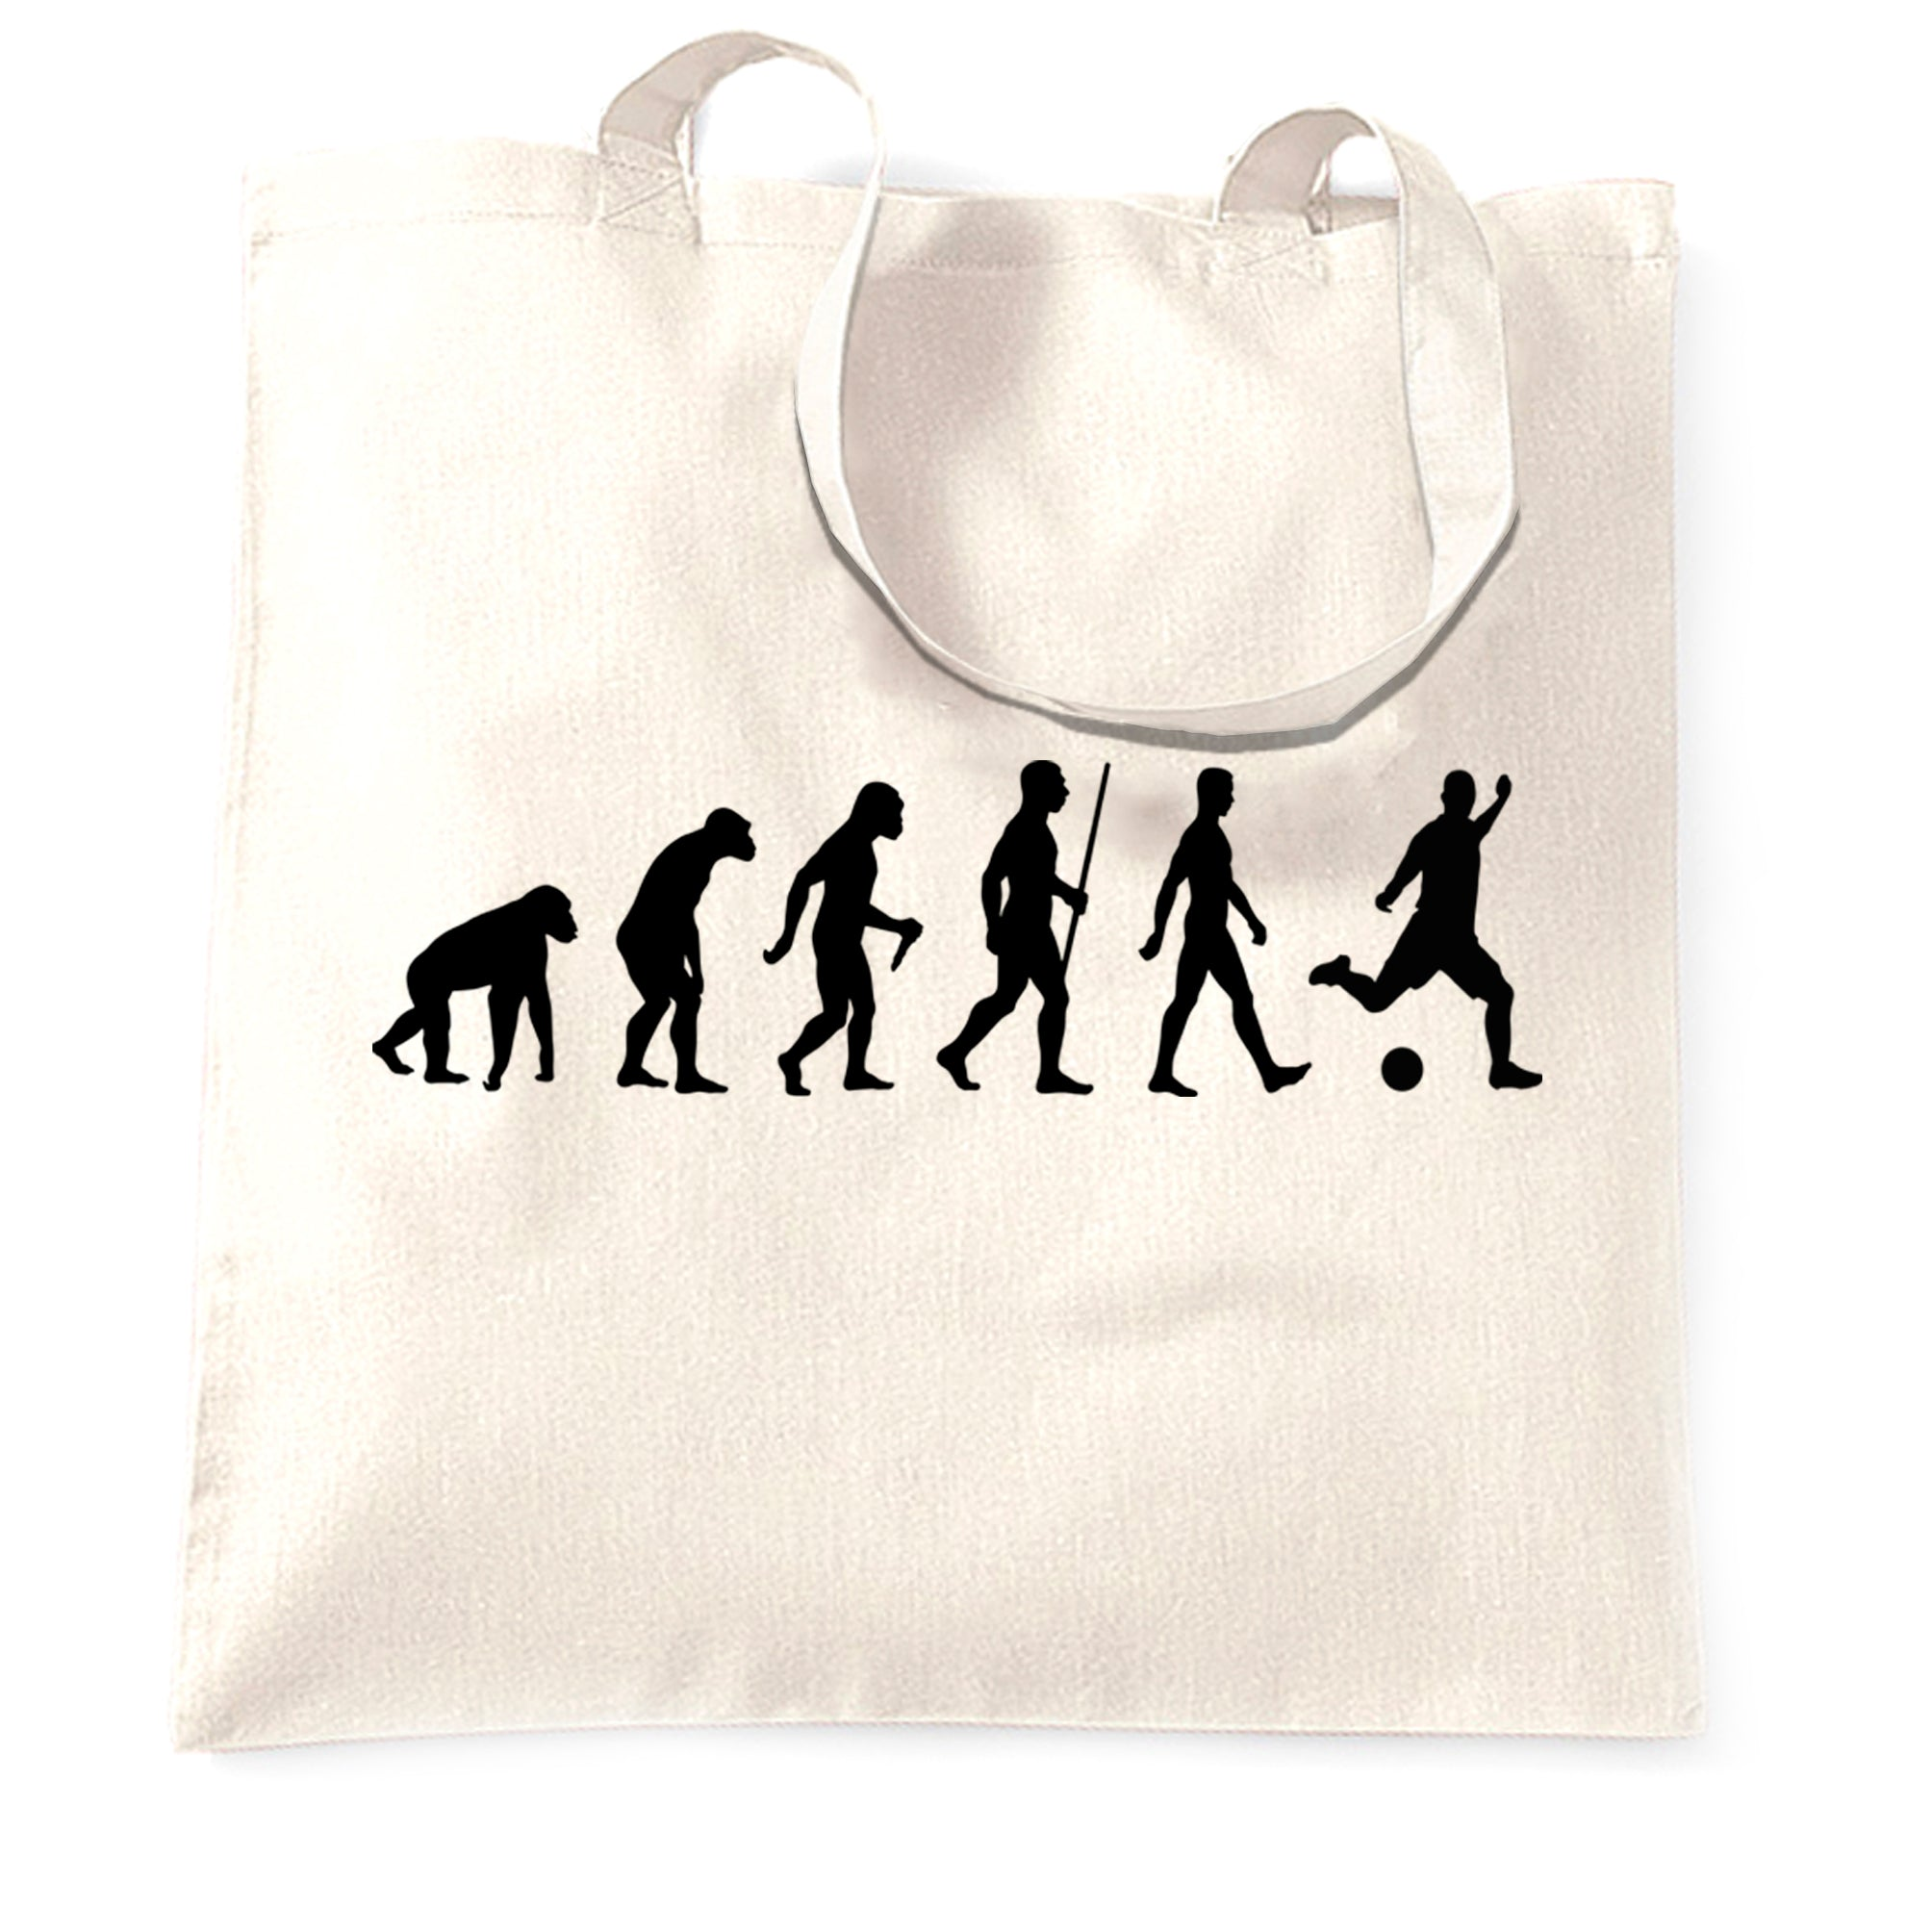 Football Fan Tote Bag The Evolution Of A Footballer